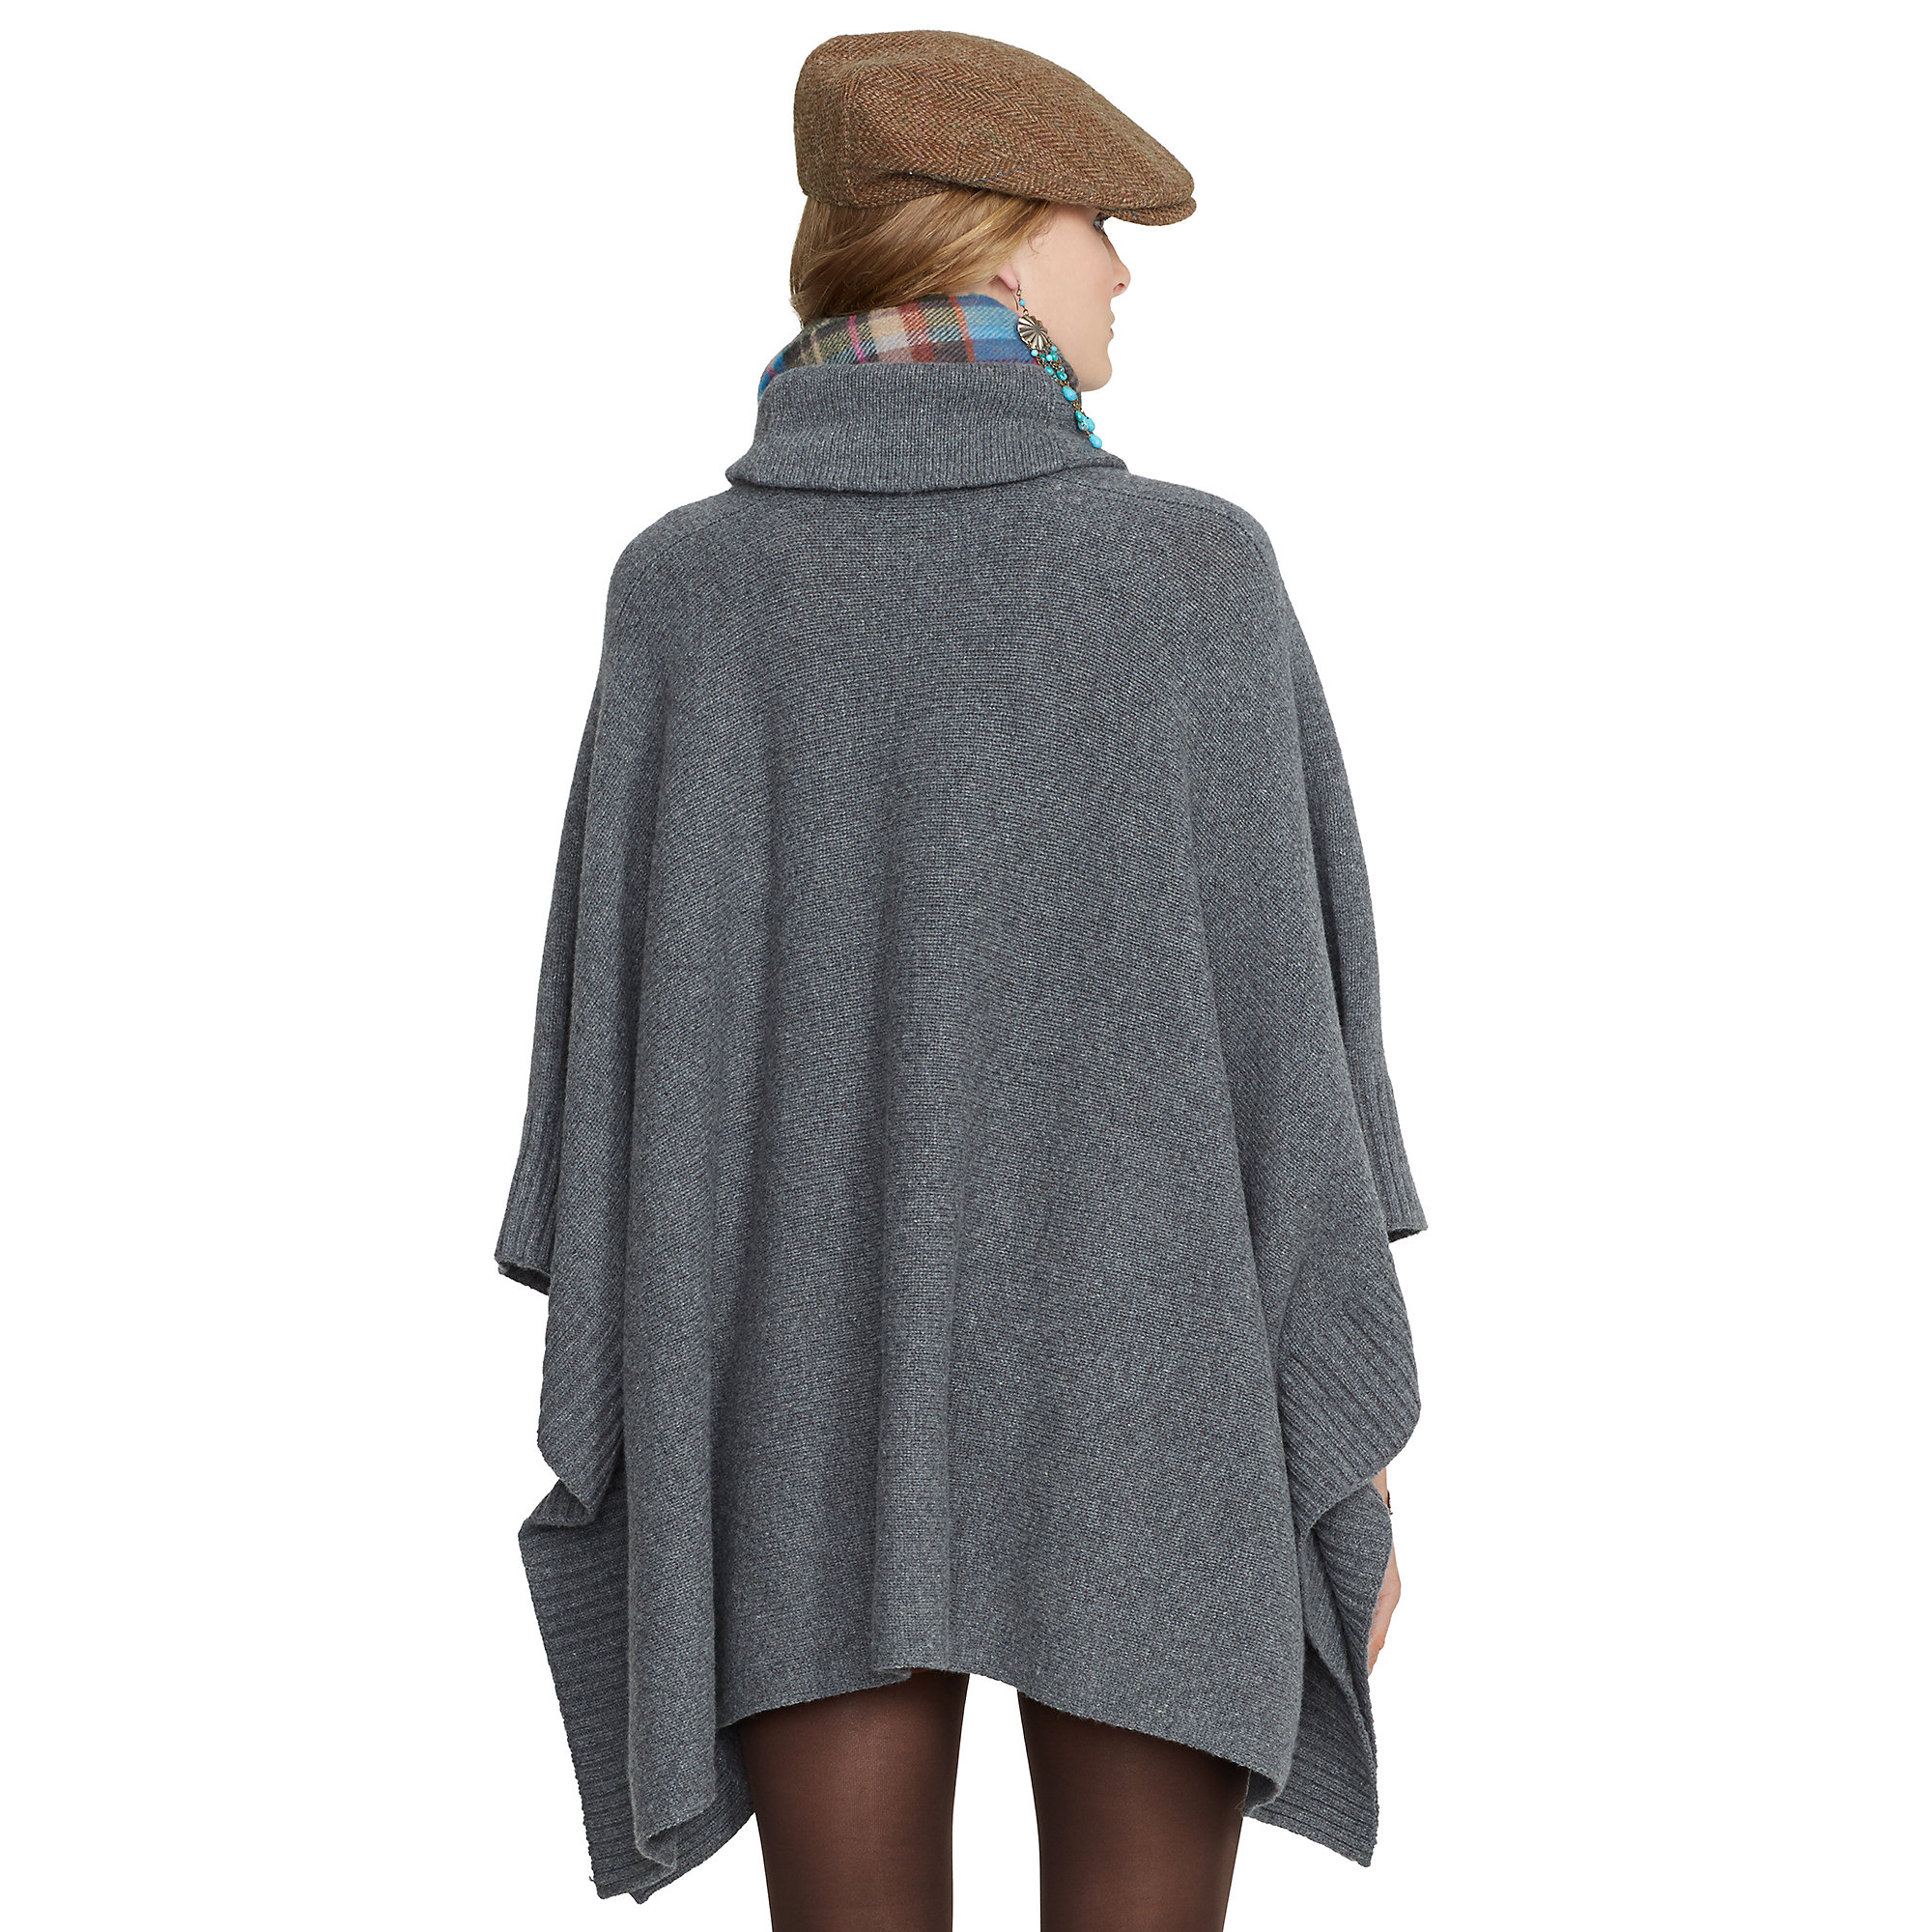 06f3635fdcfd polo ralph lauren cashmere poncho - WörterSee Public Relations